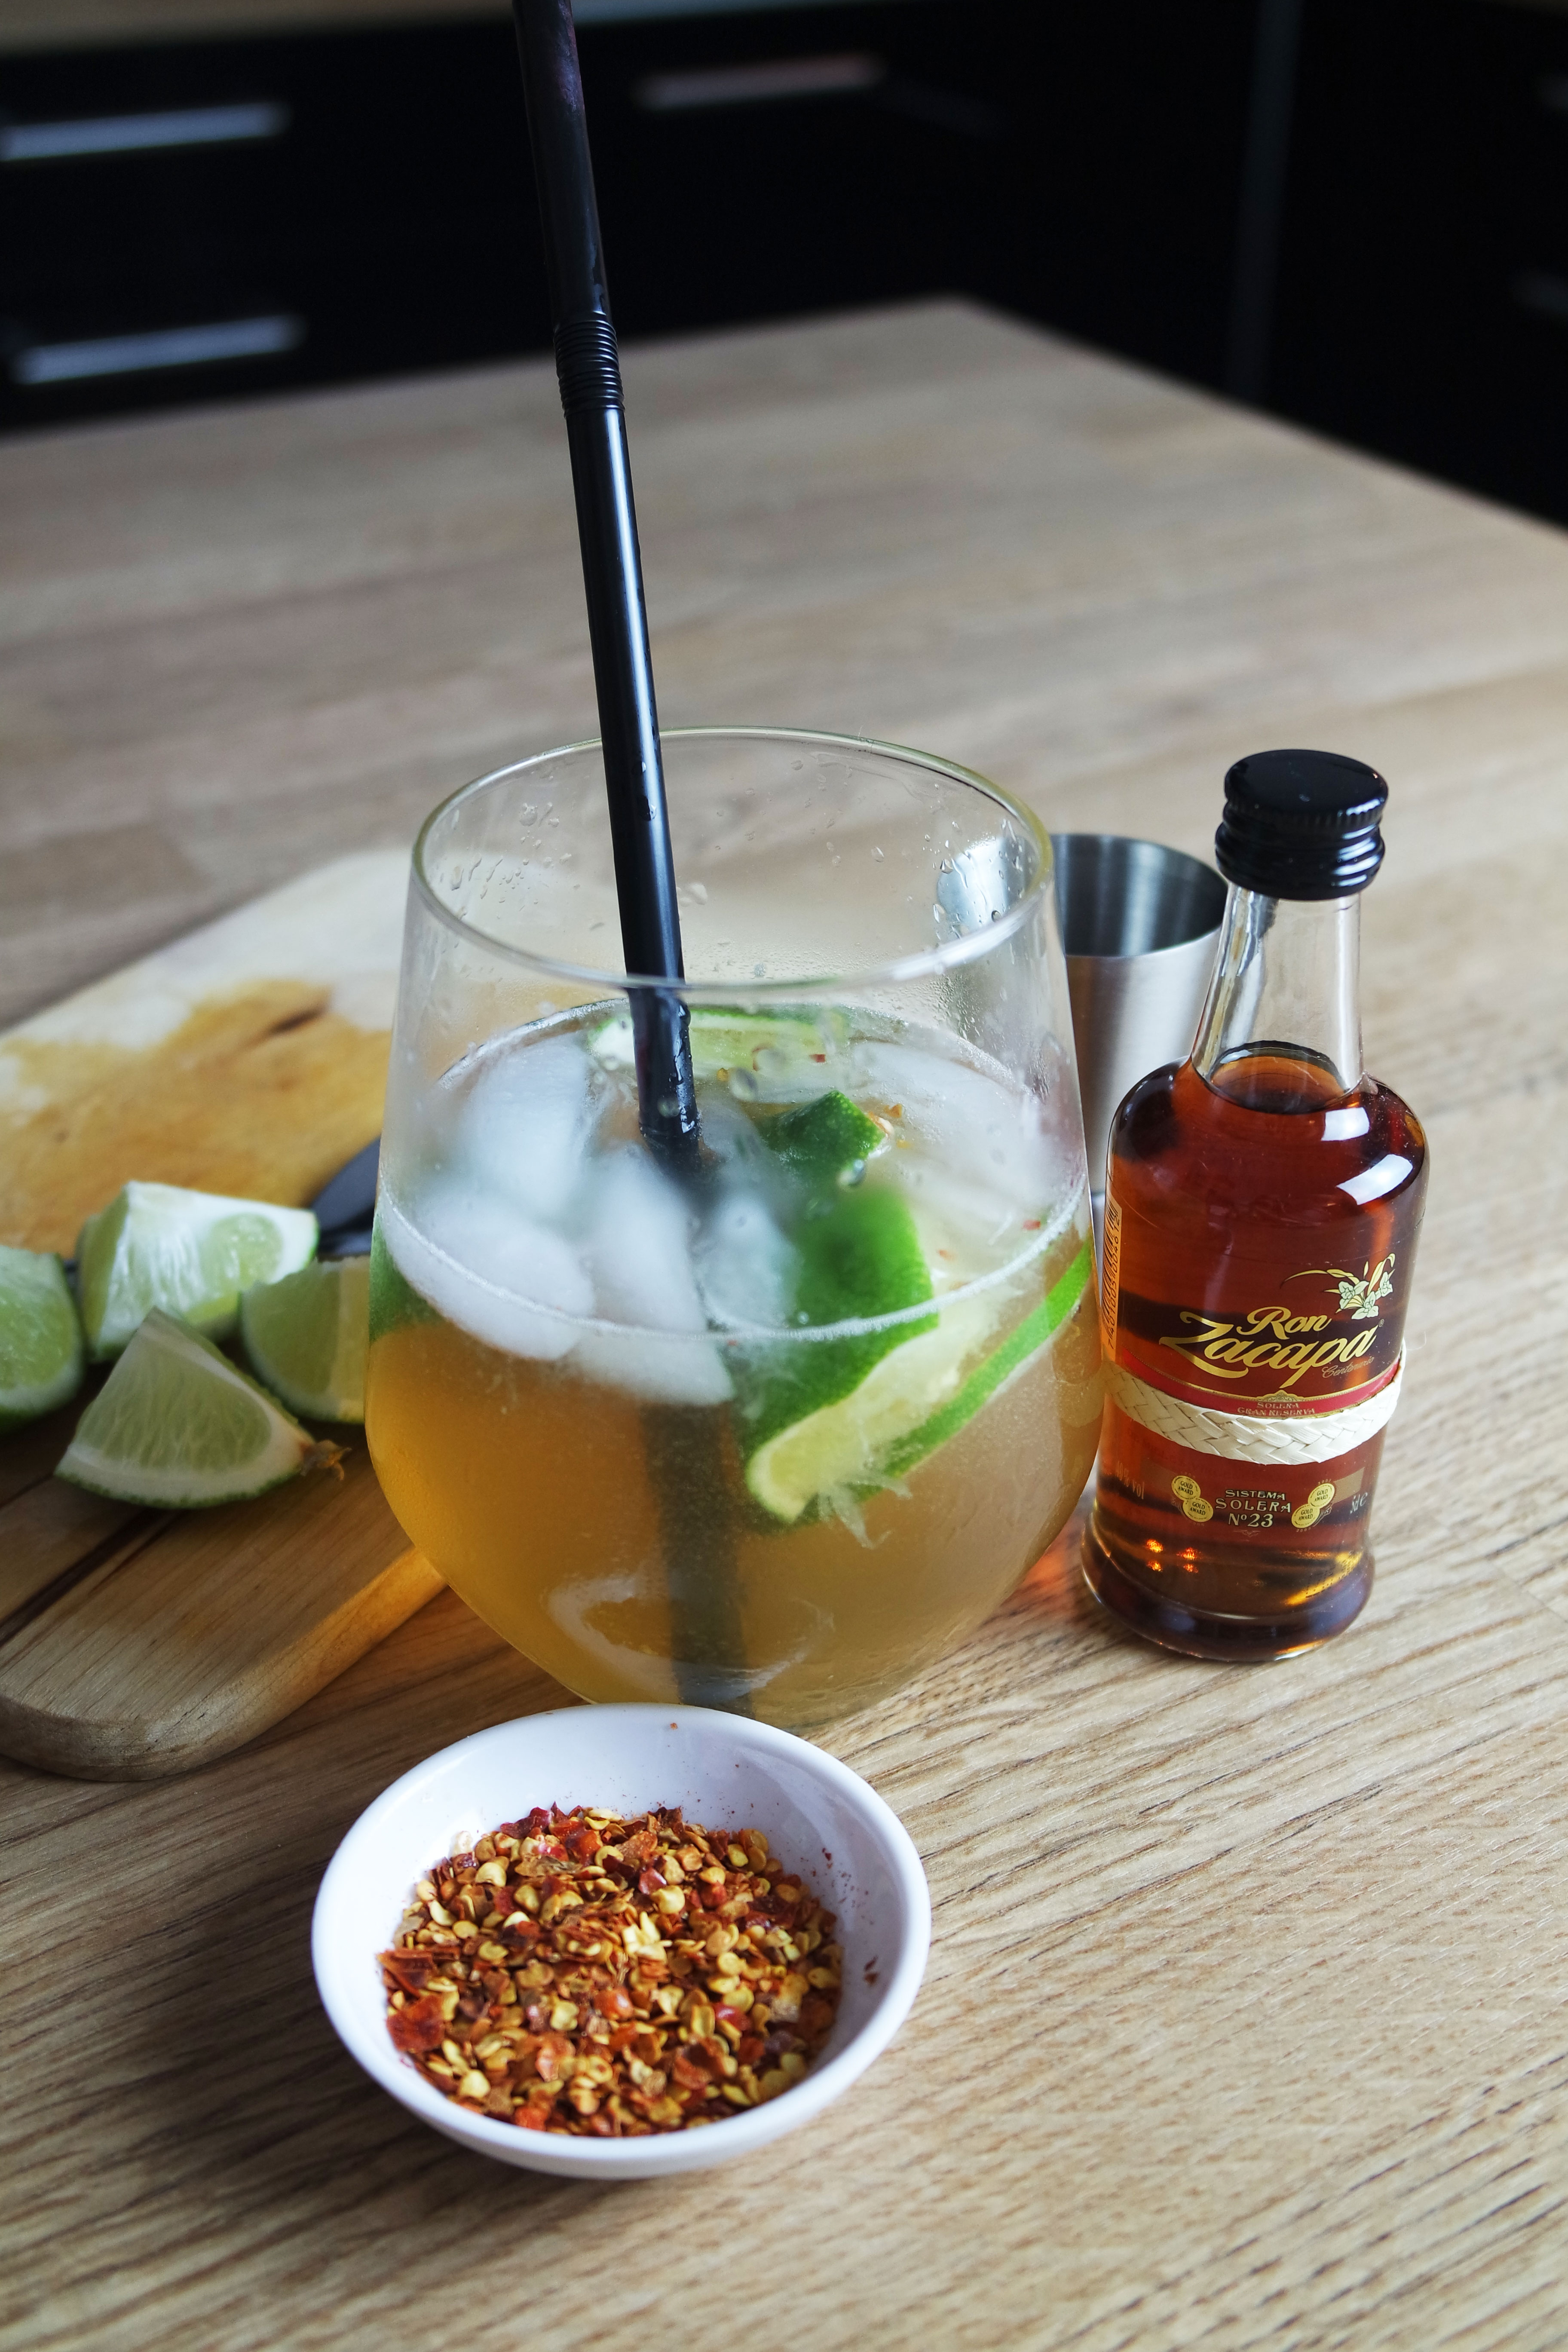 cocktail-rhum-zacapa-gingembre-recette